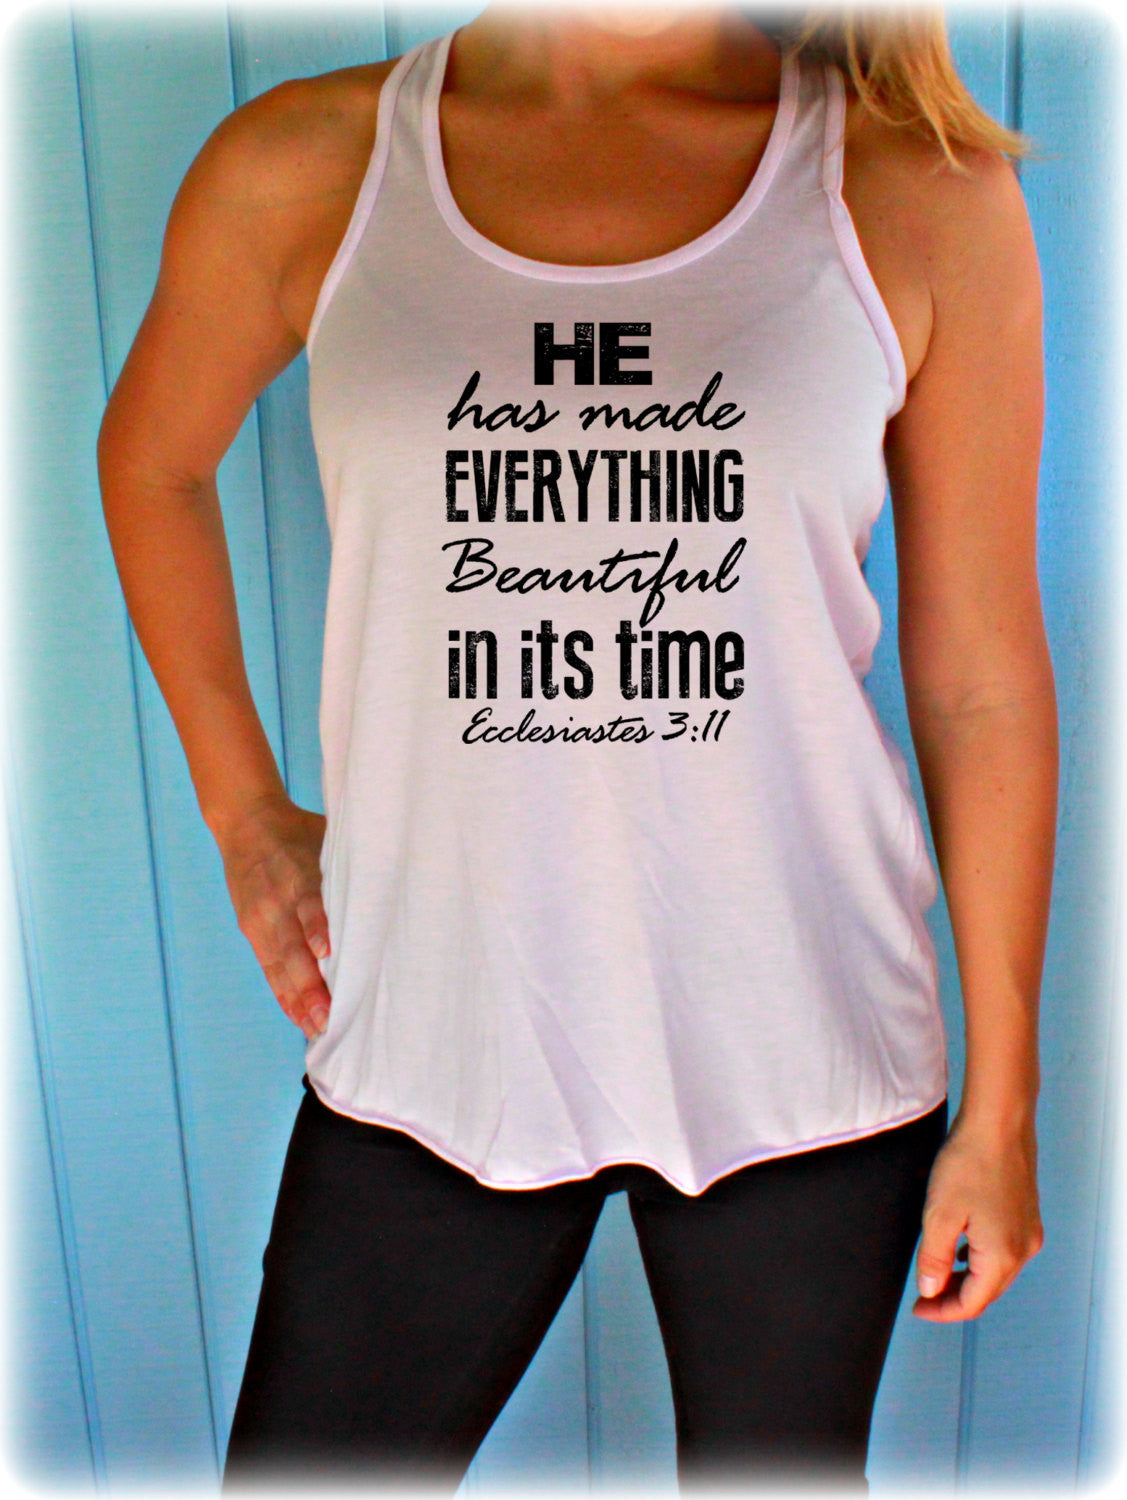 Womens Christian Workout Tank Top. Ecclesiastes 3:11. He Has Made Beautiful Bible Verse. Motivational Quote. Cross Training Tank Top.